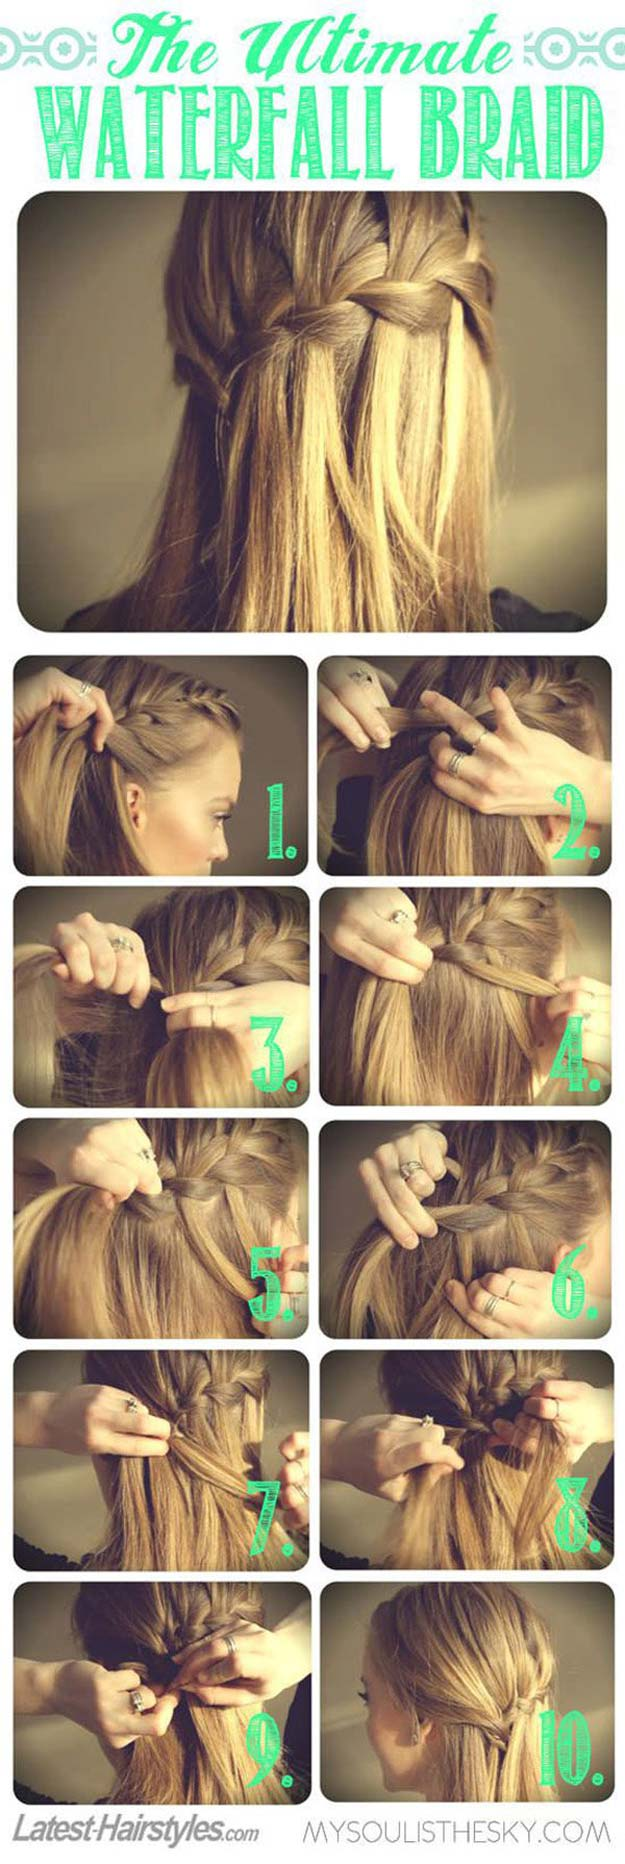 Best Hairstyles for Long Hair - Ultimate Waterfall Braid - Step by Step Tutorials for Easy Curls, Updo, Half Up, Braids and Lazy Girl Looks. Prom Ideas, Special Occasion Hair and Braiding Instructions for Teens, Teenagers and Adults, Women and Girls http://diyprojectsforteens.com/best-hairstyles-long-hair